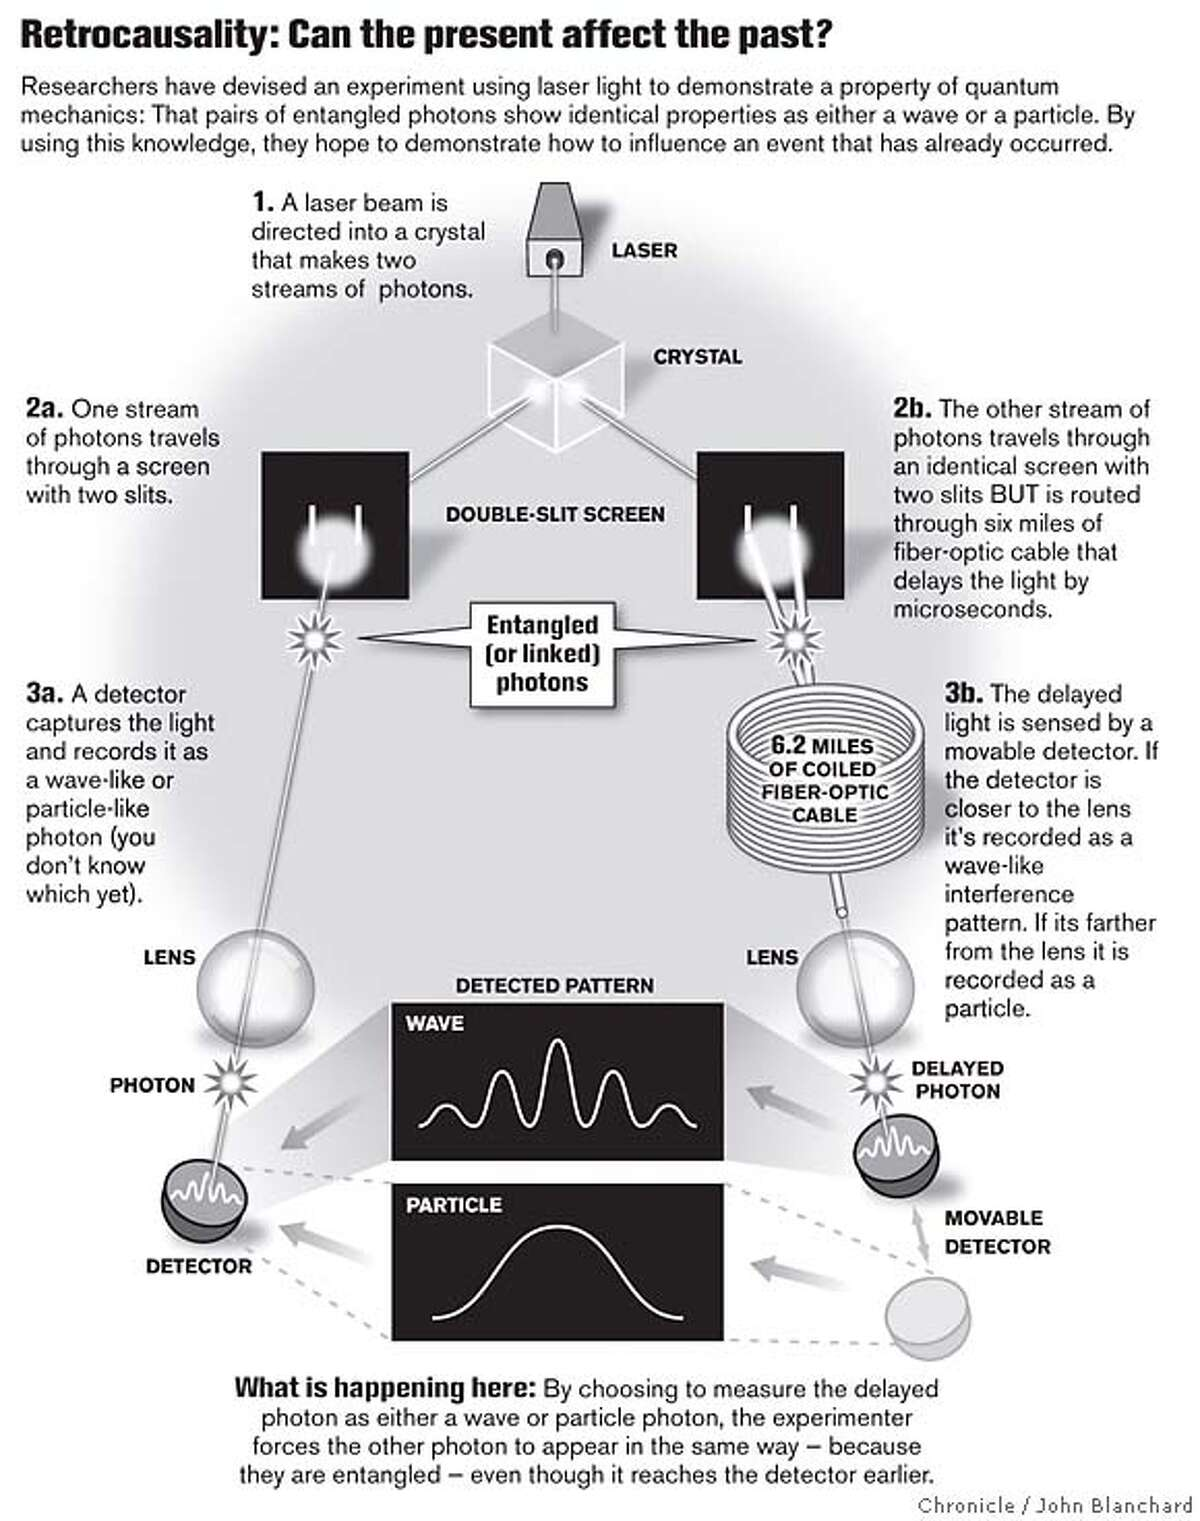 Retrocausality: Can the Present Affect the Past? Chronicle graphic by John Blanchard